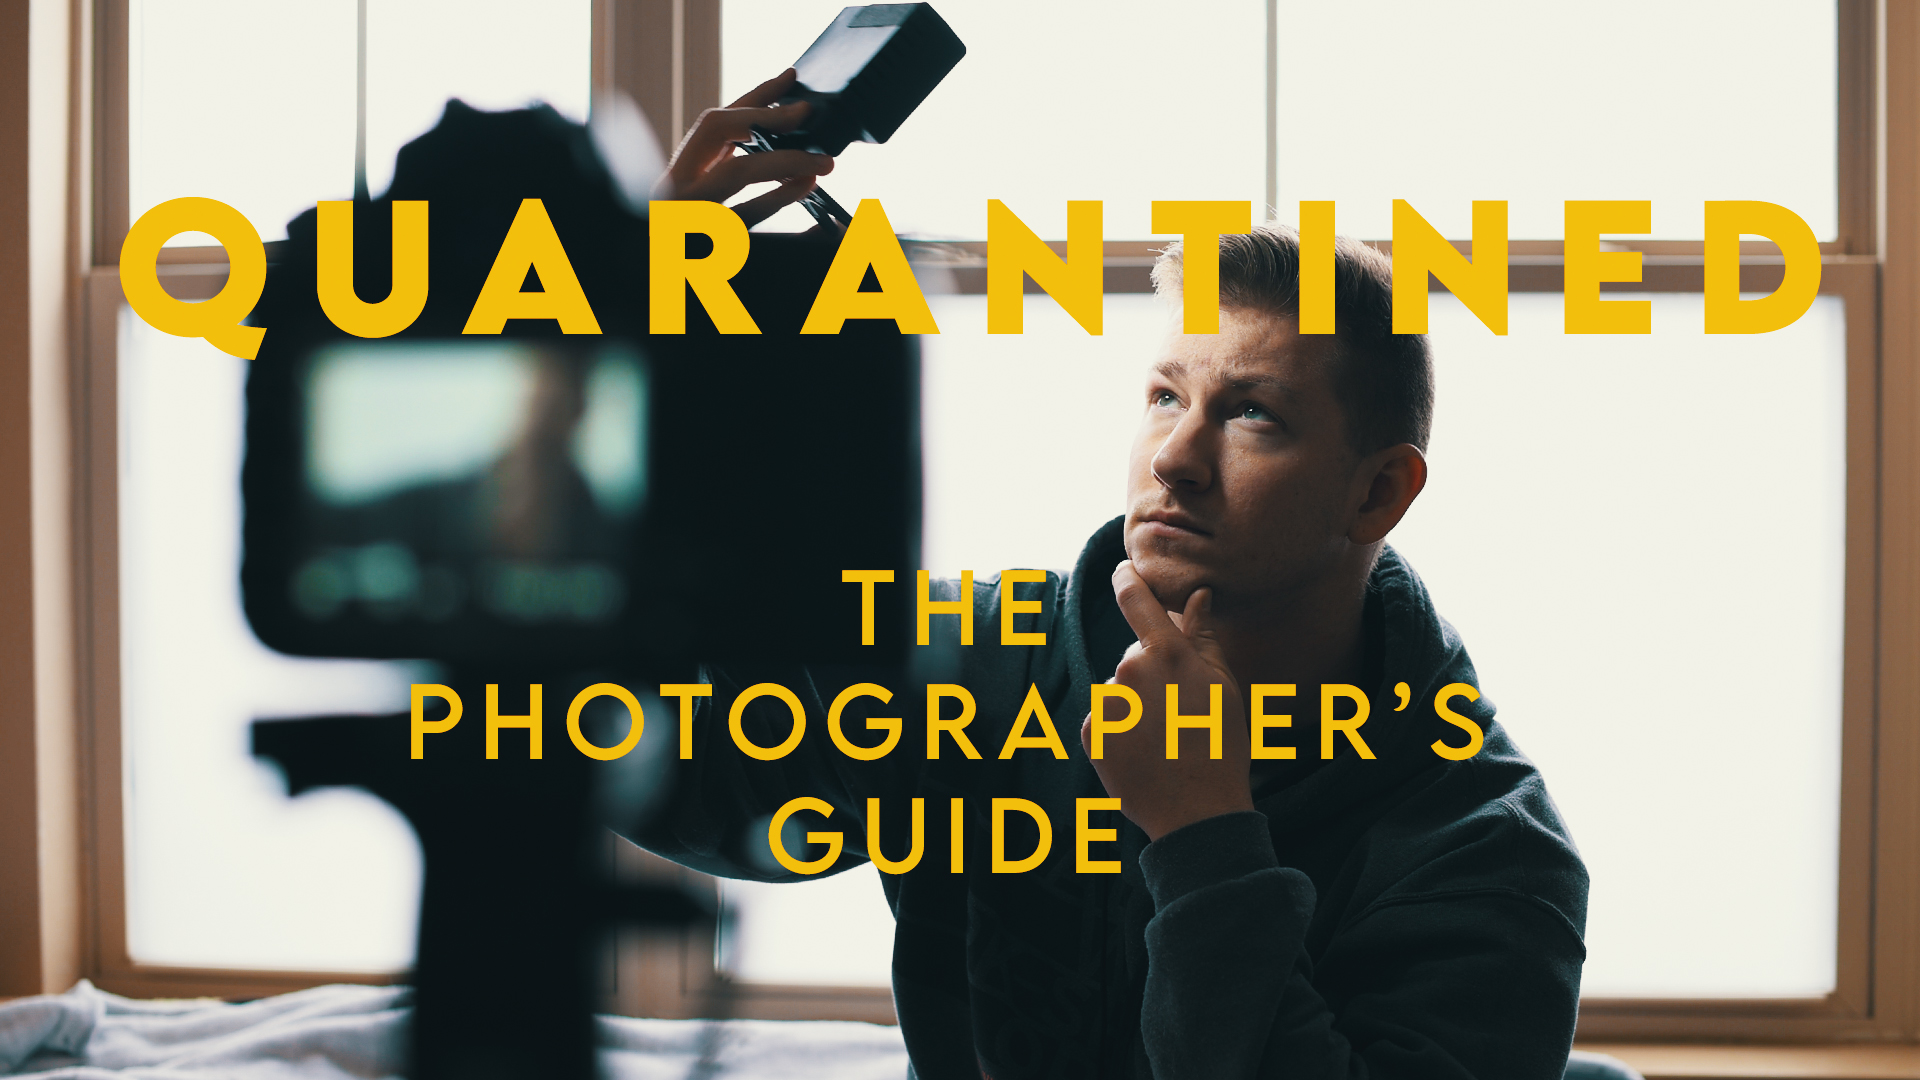 Quarantined: The Photographer's Guide